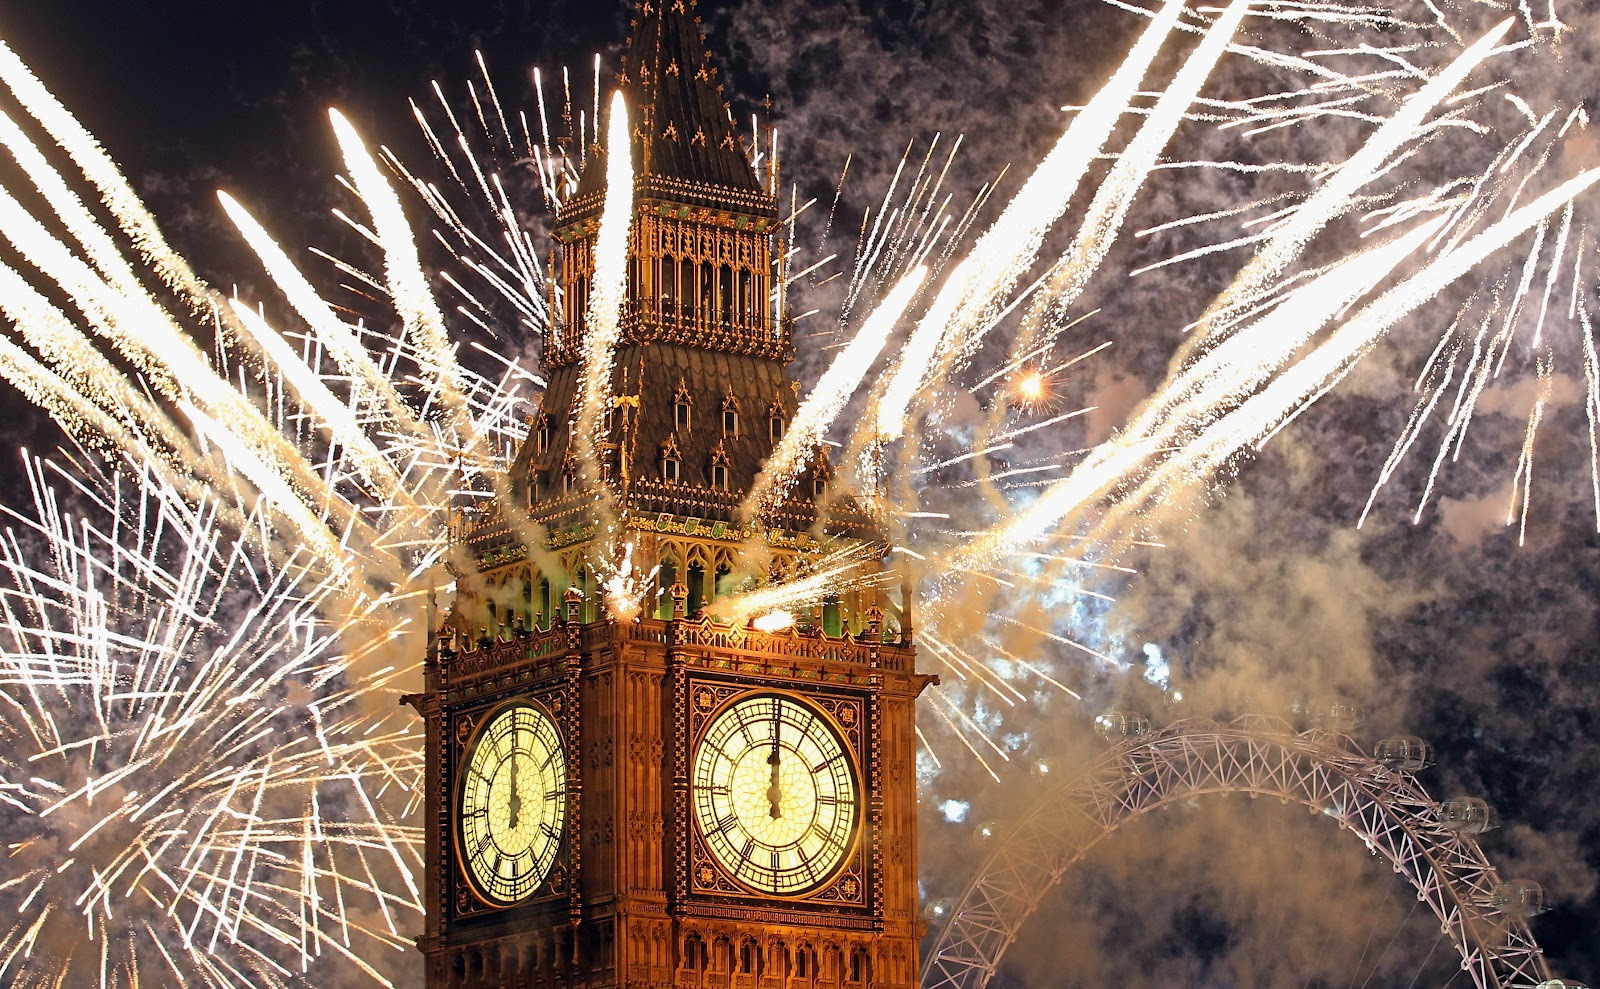 10 Best Places to Celebrate New Year's Eve places to celebrate new year's 10 Best Places to Celebrate New Year's Eve st georges day fireworks